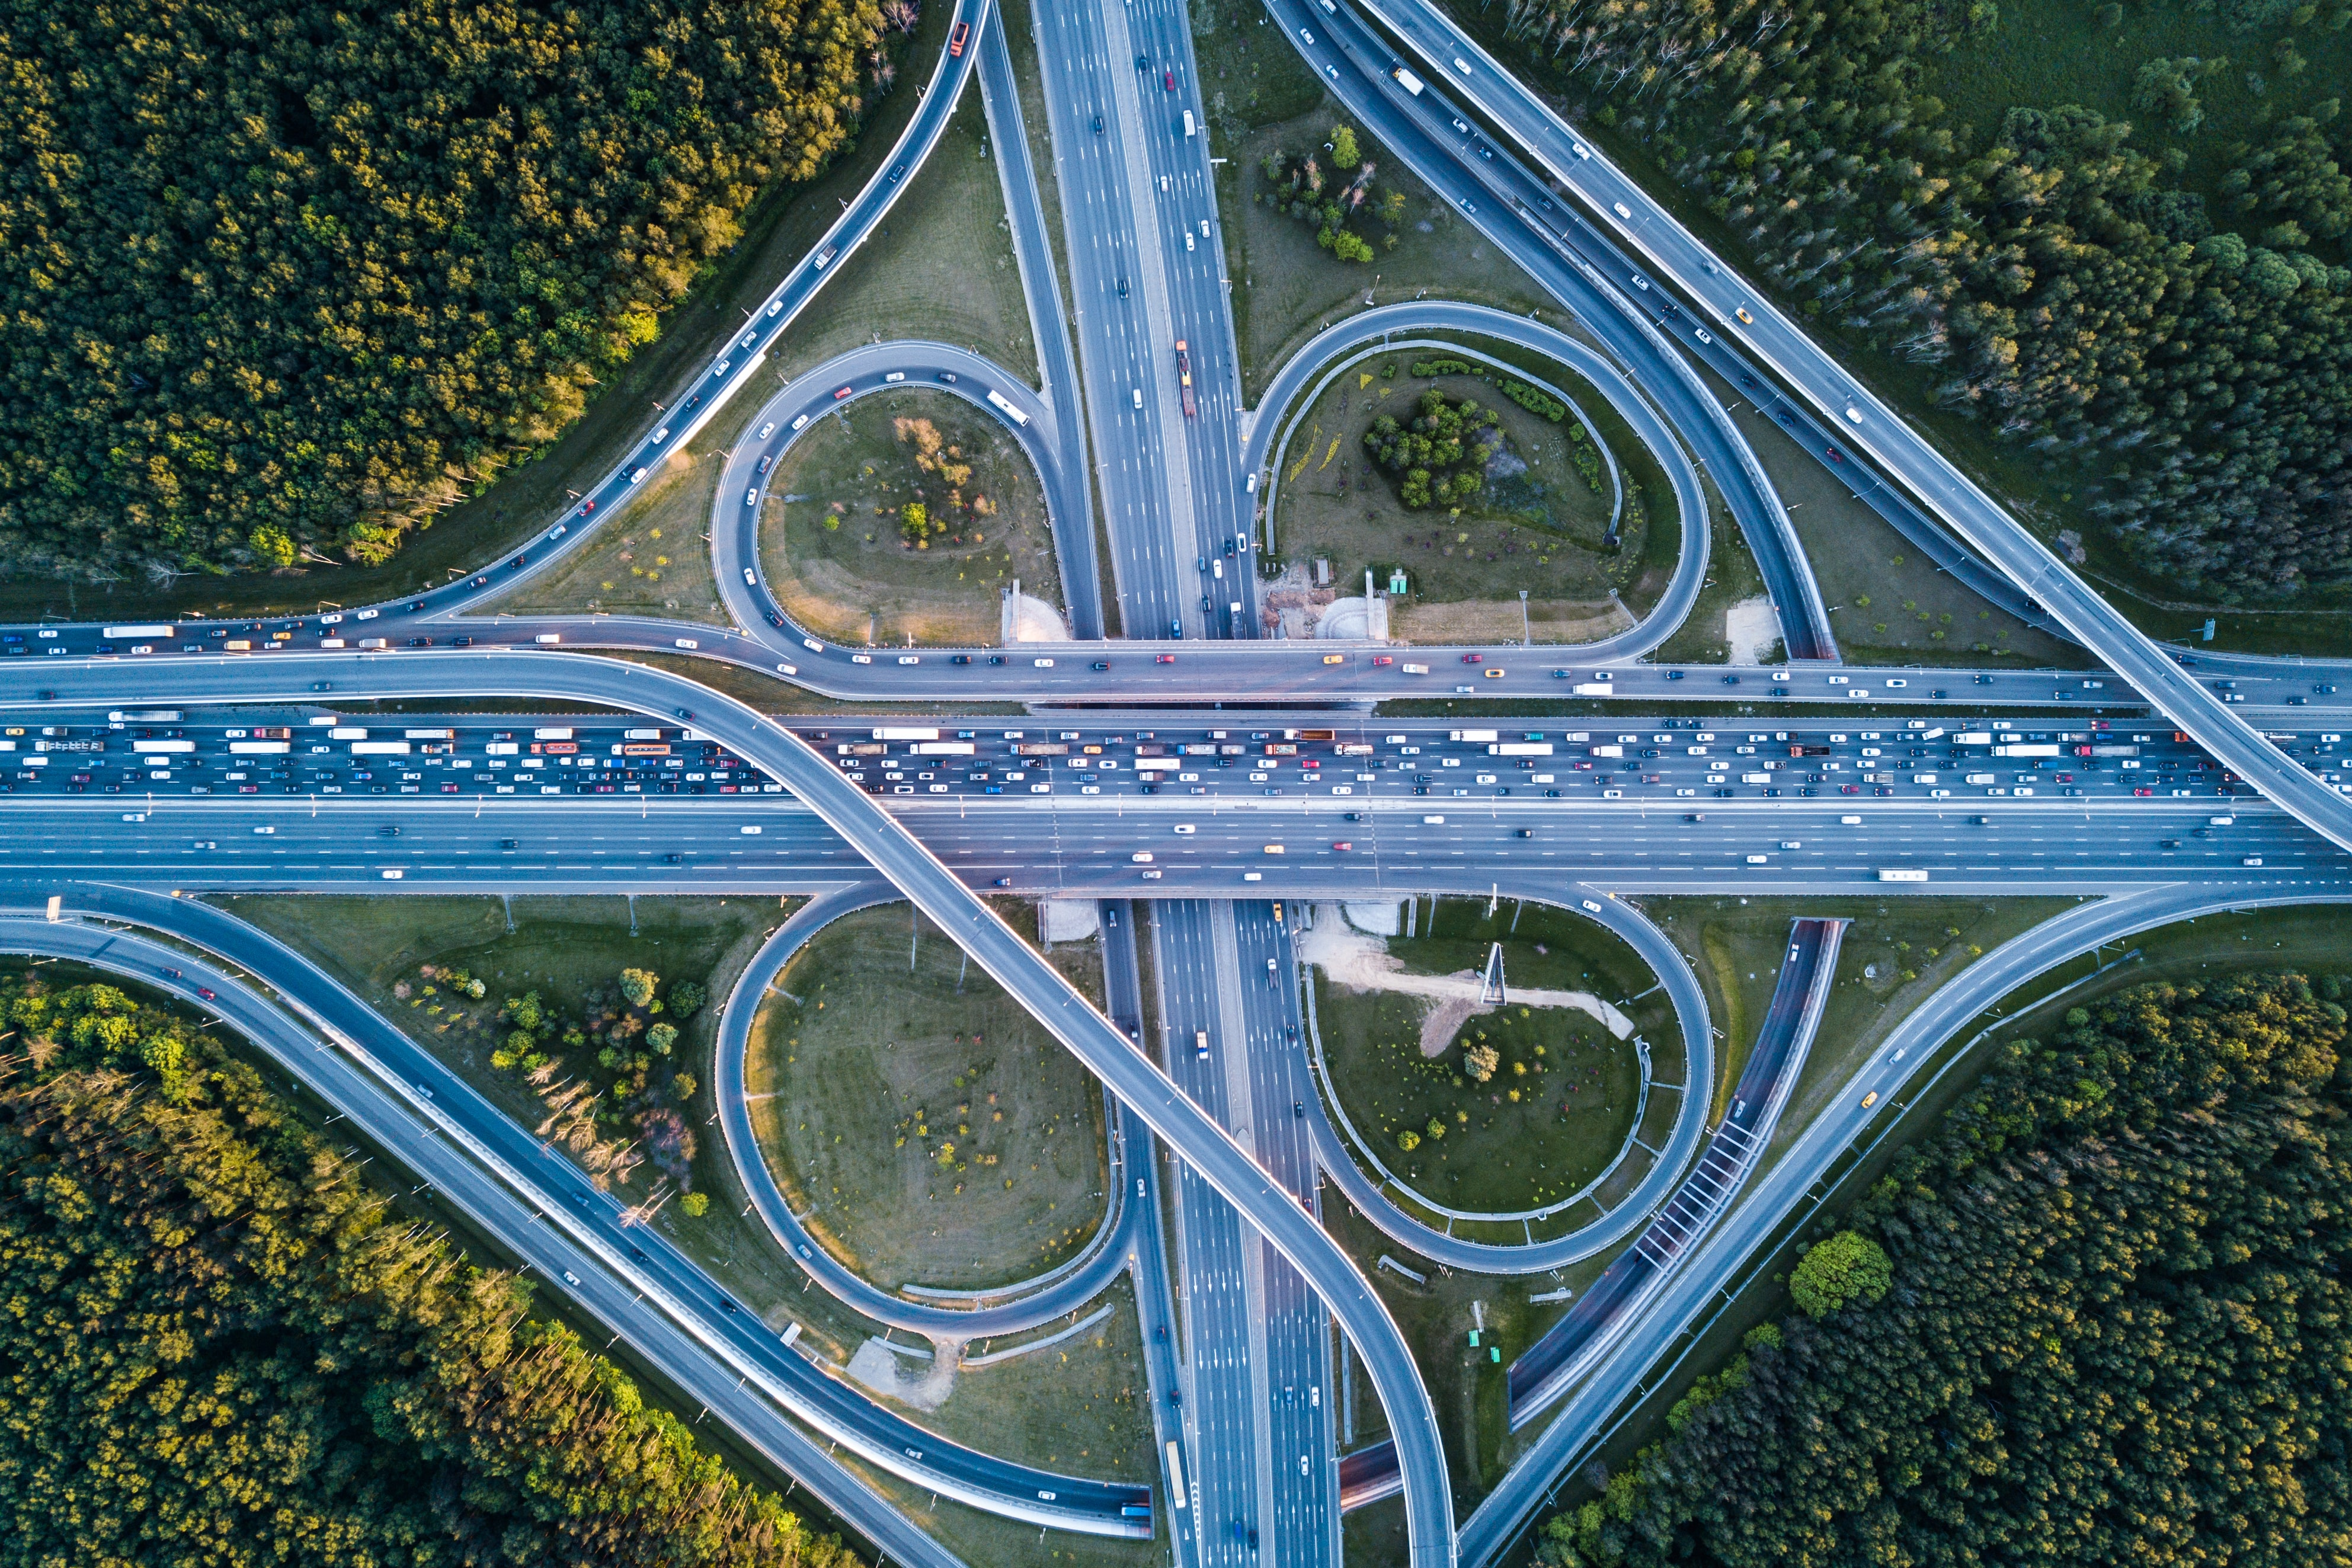 top view of road with cars